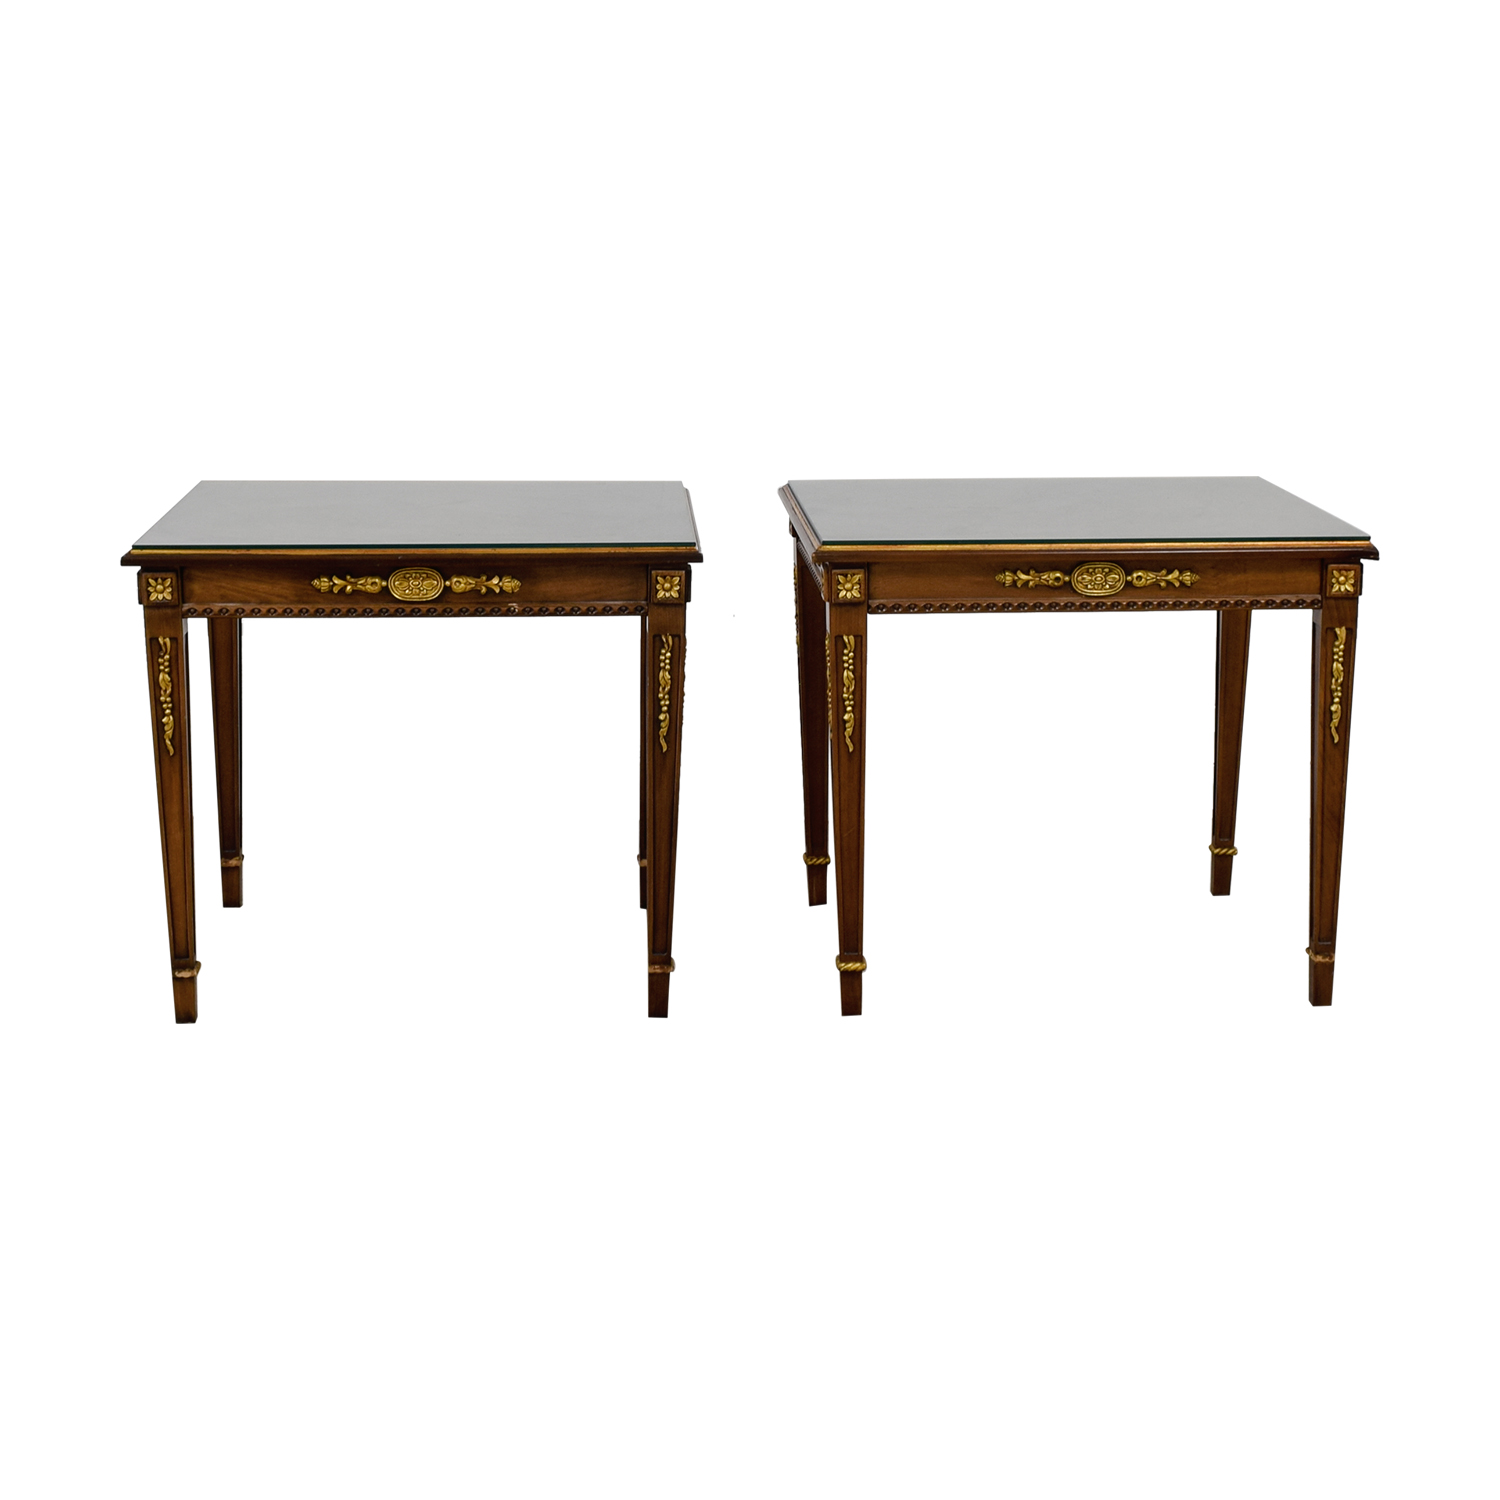 off wood gold trimmed end tables with glass protective top and stained trunk table rustic antique coffee oriental nesting bedside for bedroom ashley furniture triangle bond anti